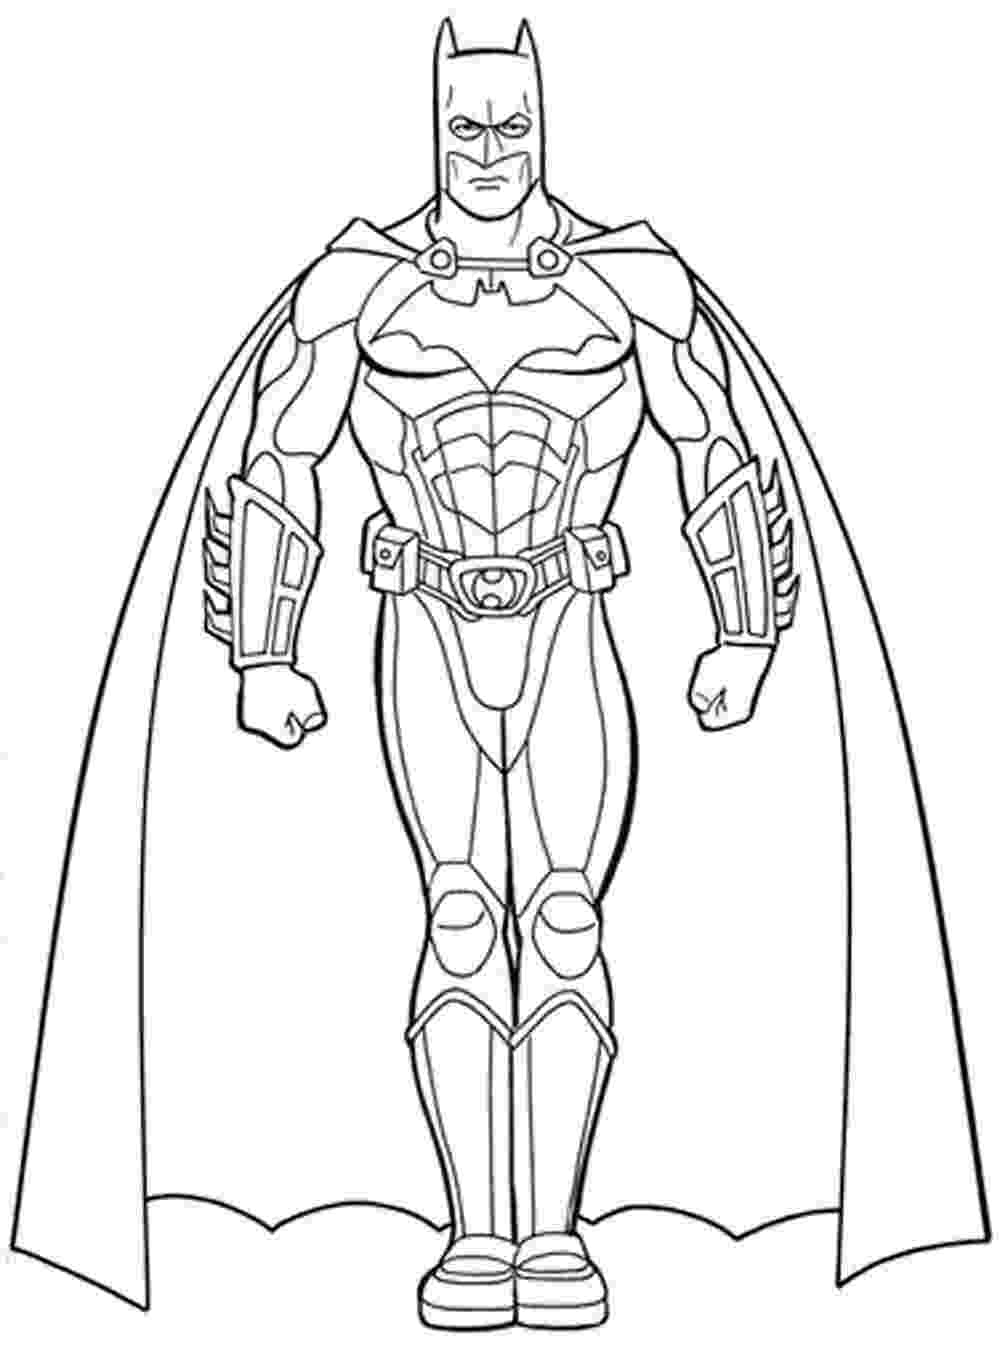 batman printables batman coloring pages super coloring book printables batman